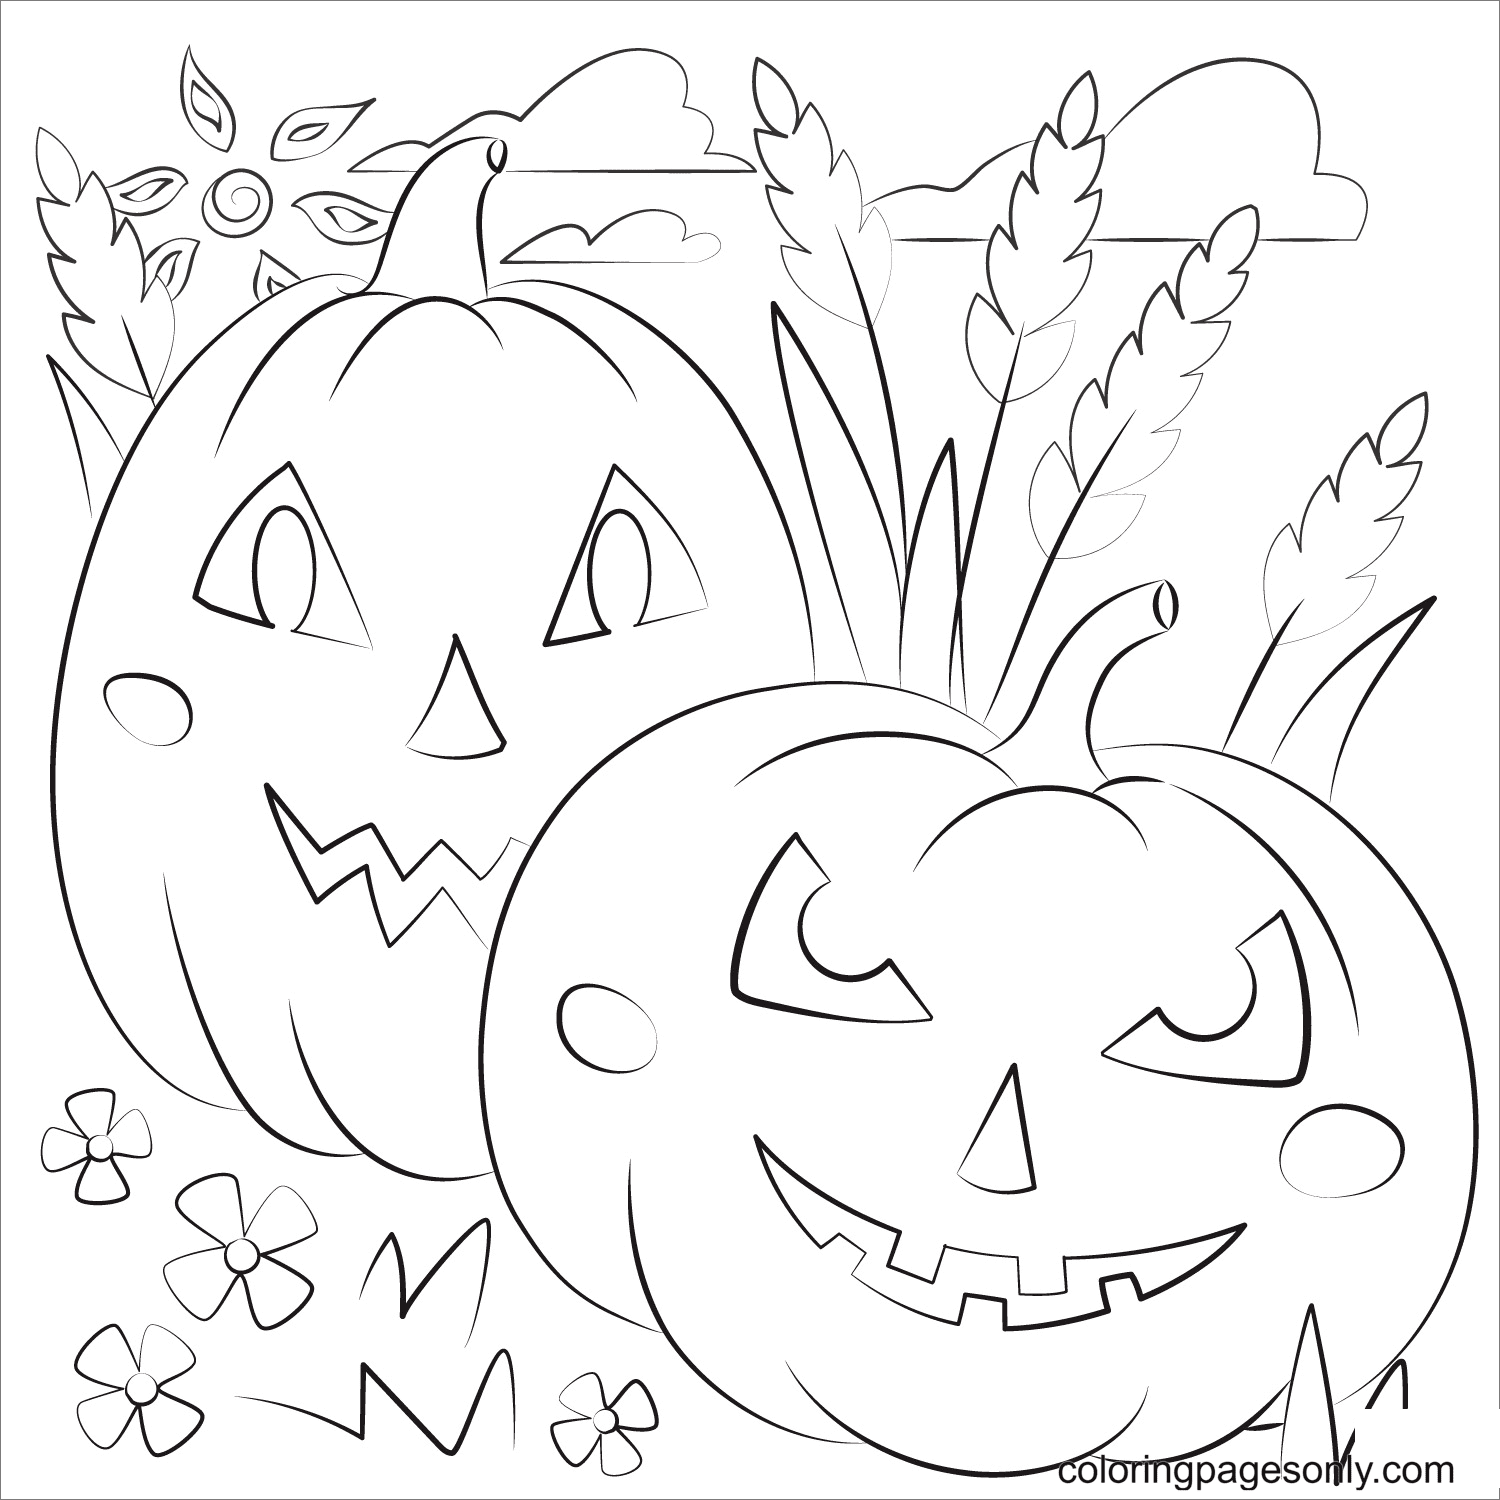 Two Scary Pumpkins Coloring Page